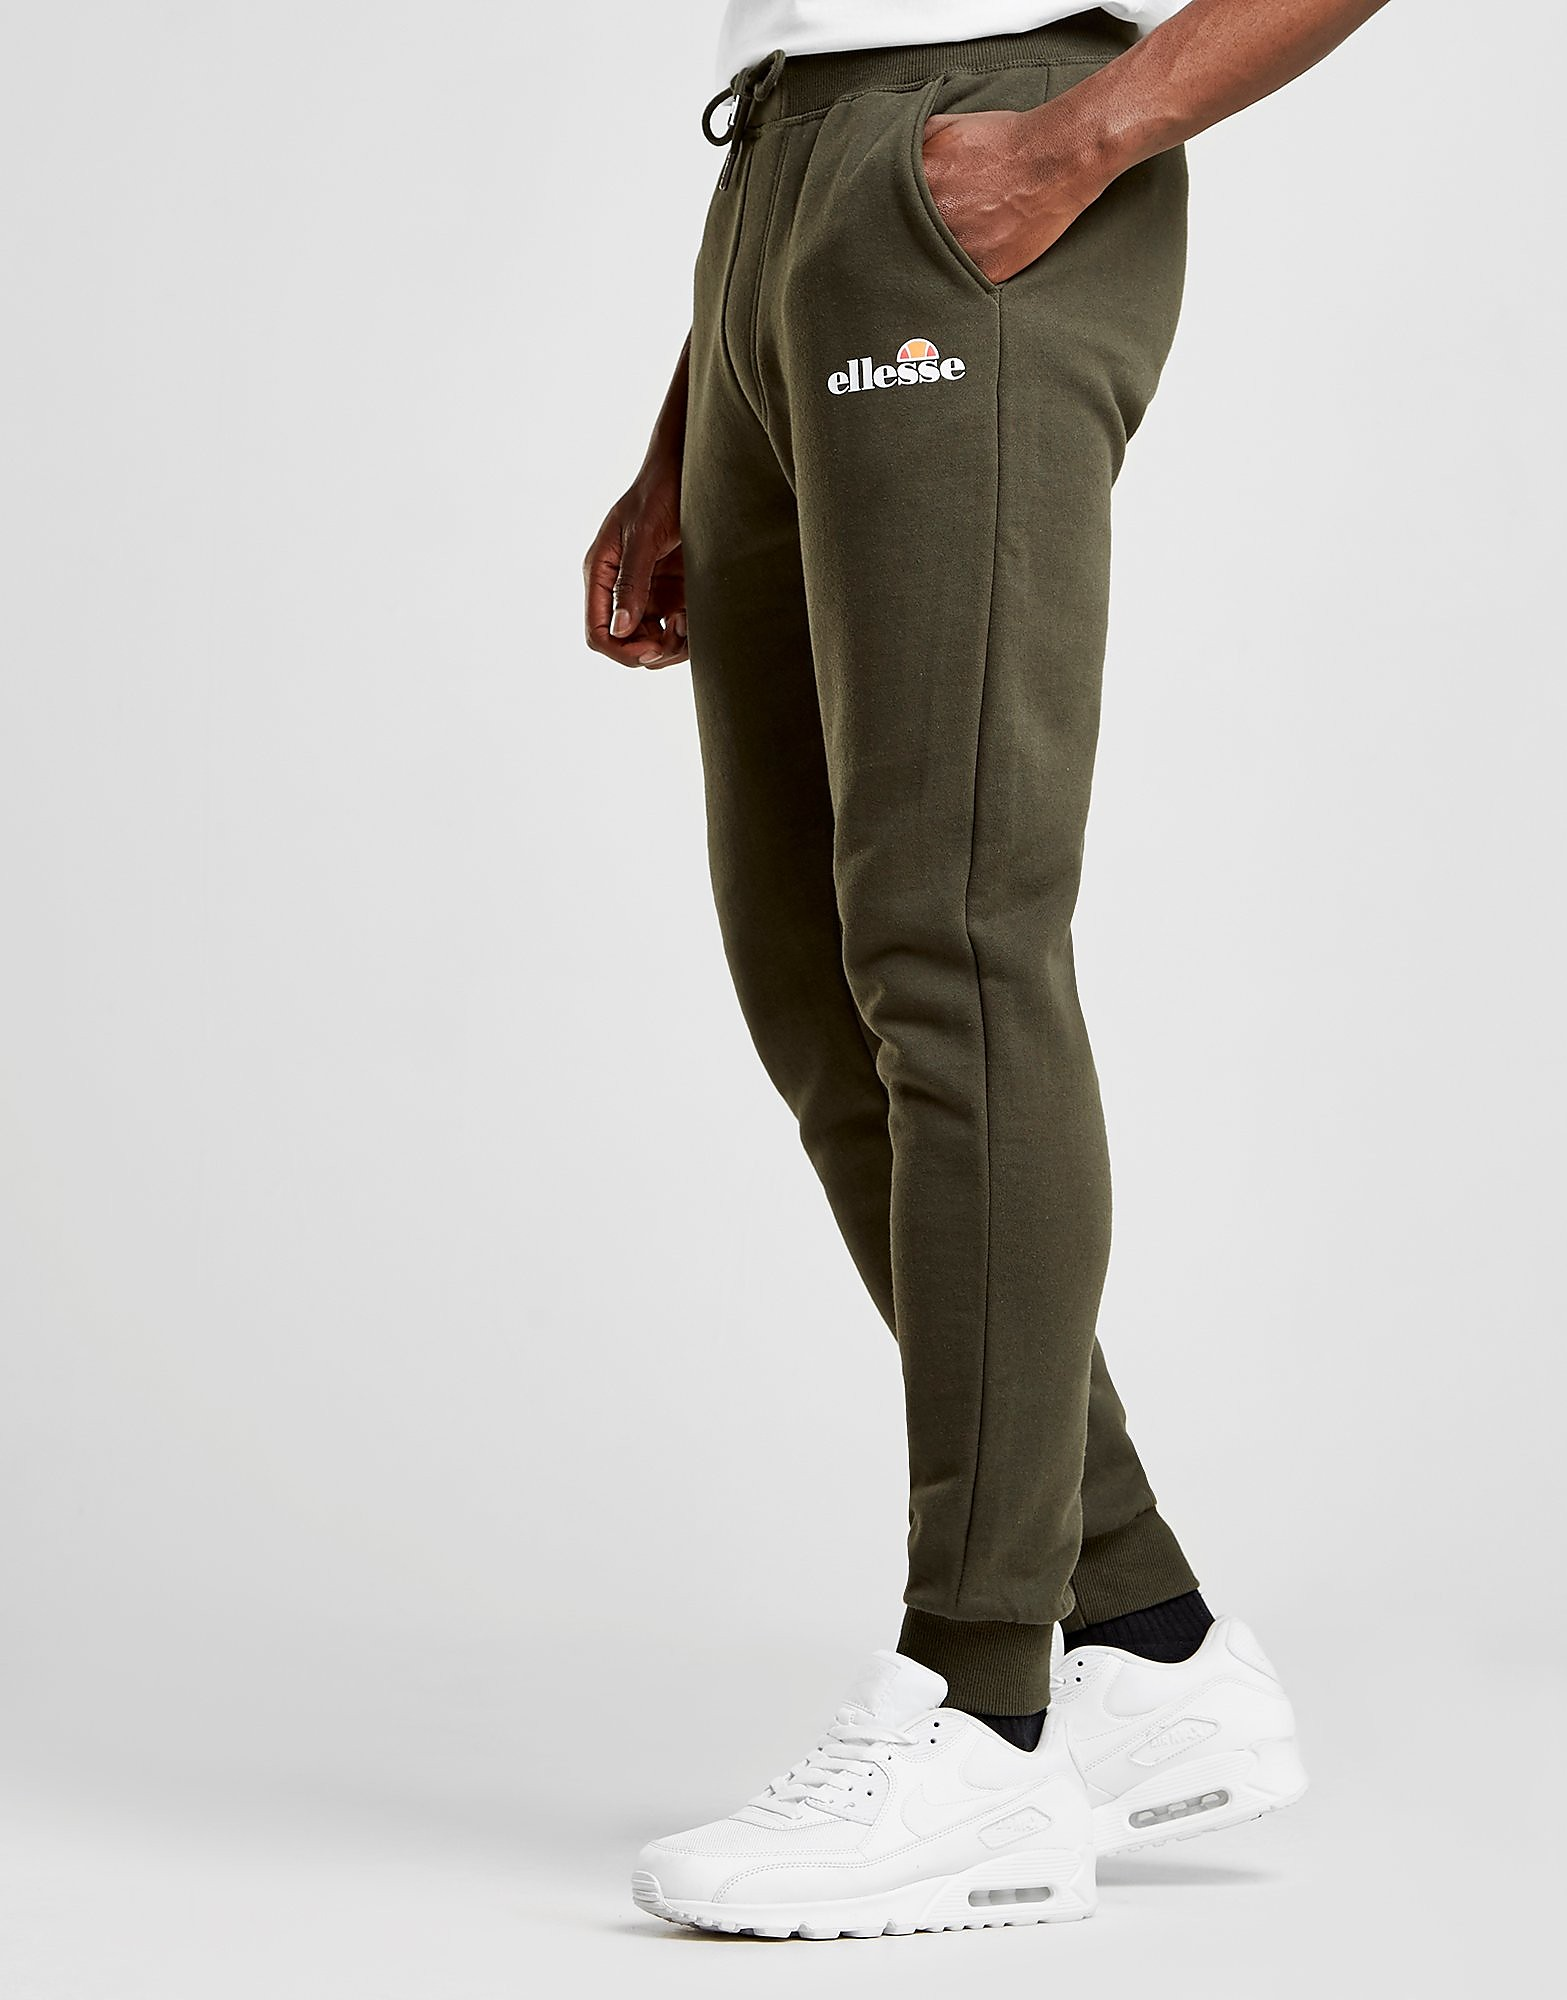 Ellesse Sero Fleece Pants